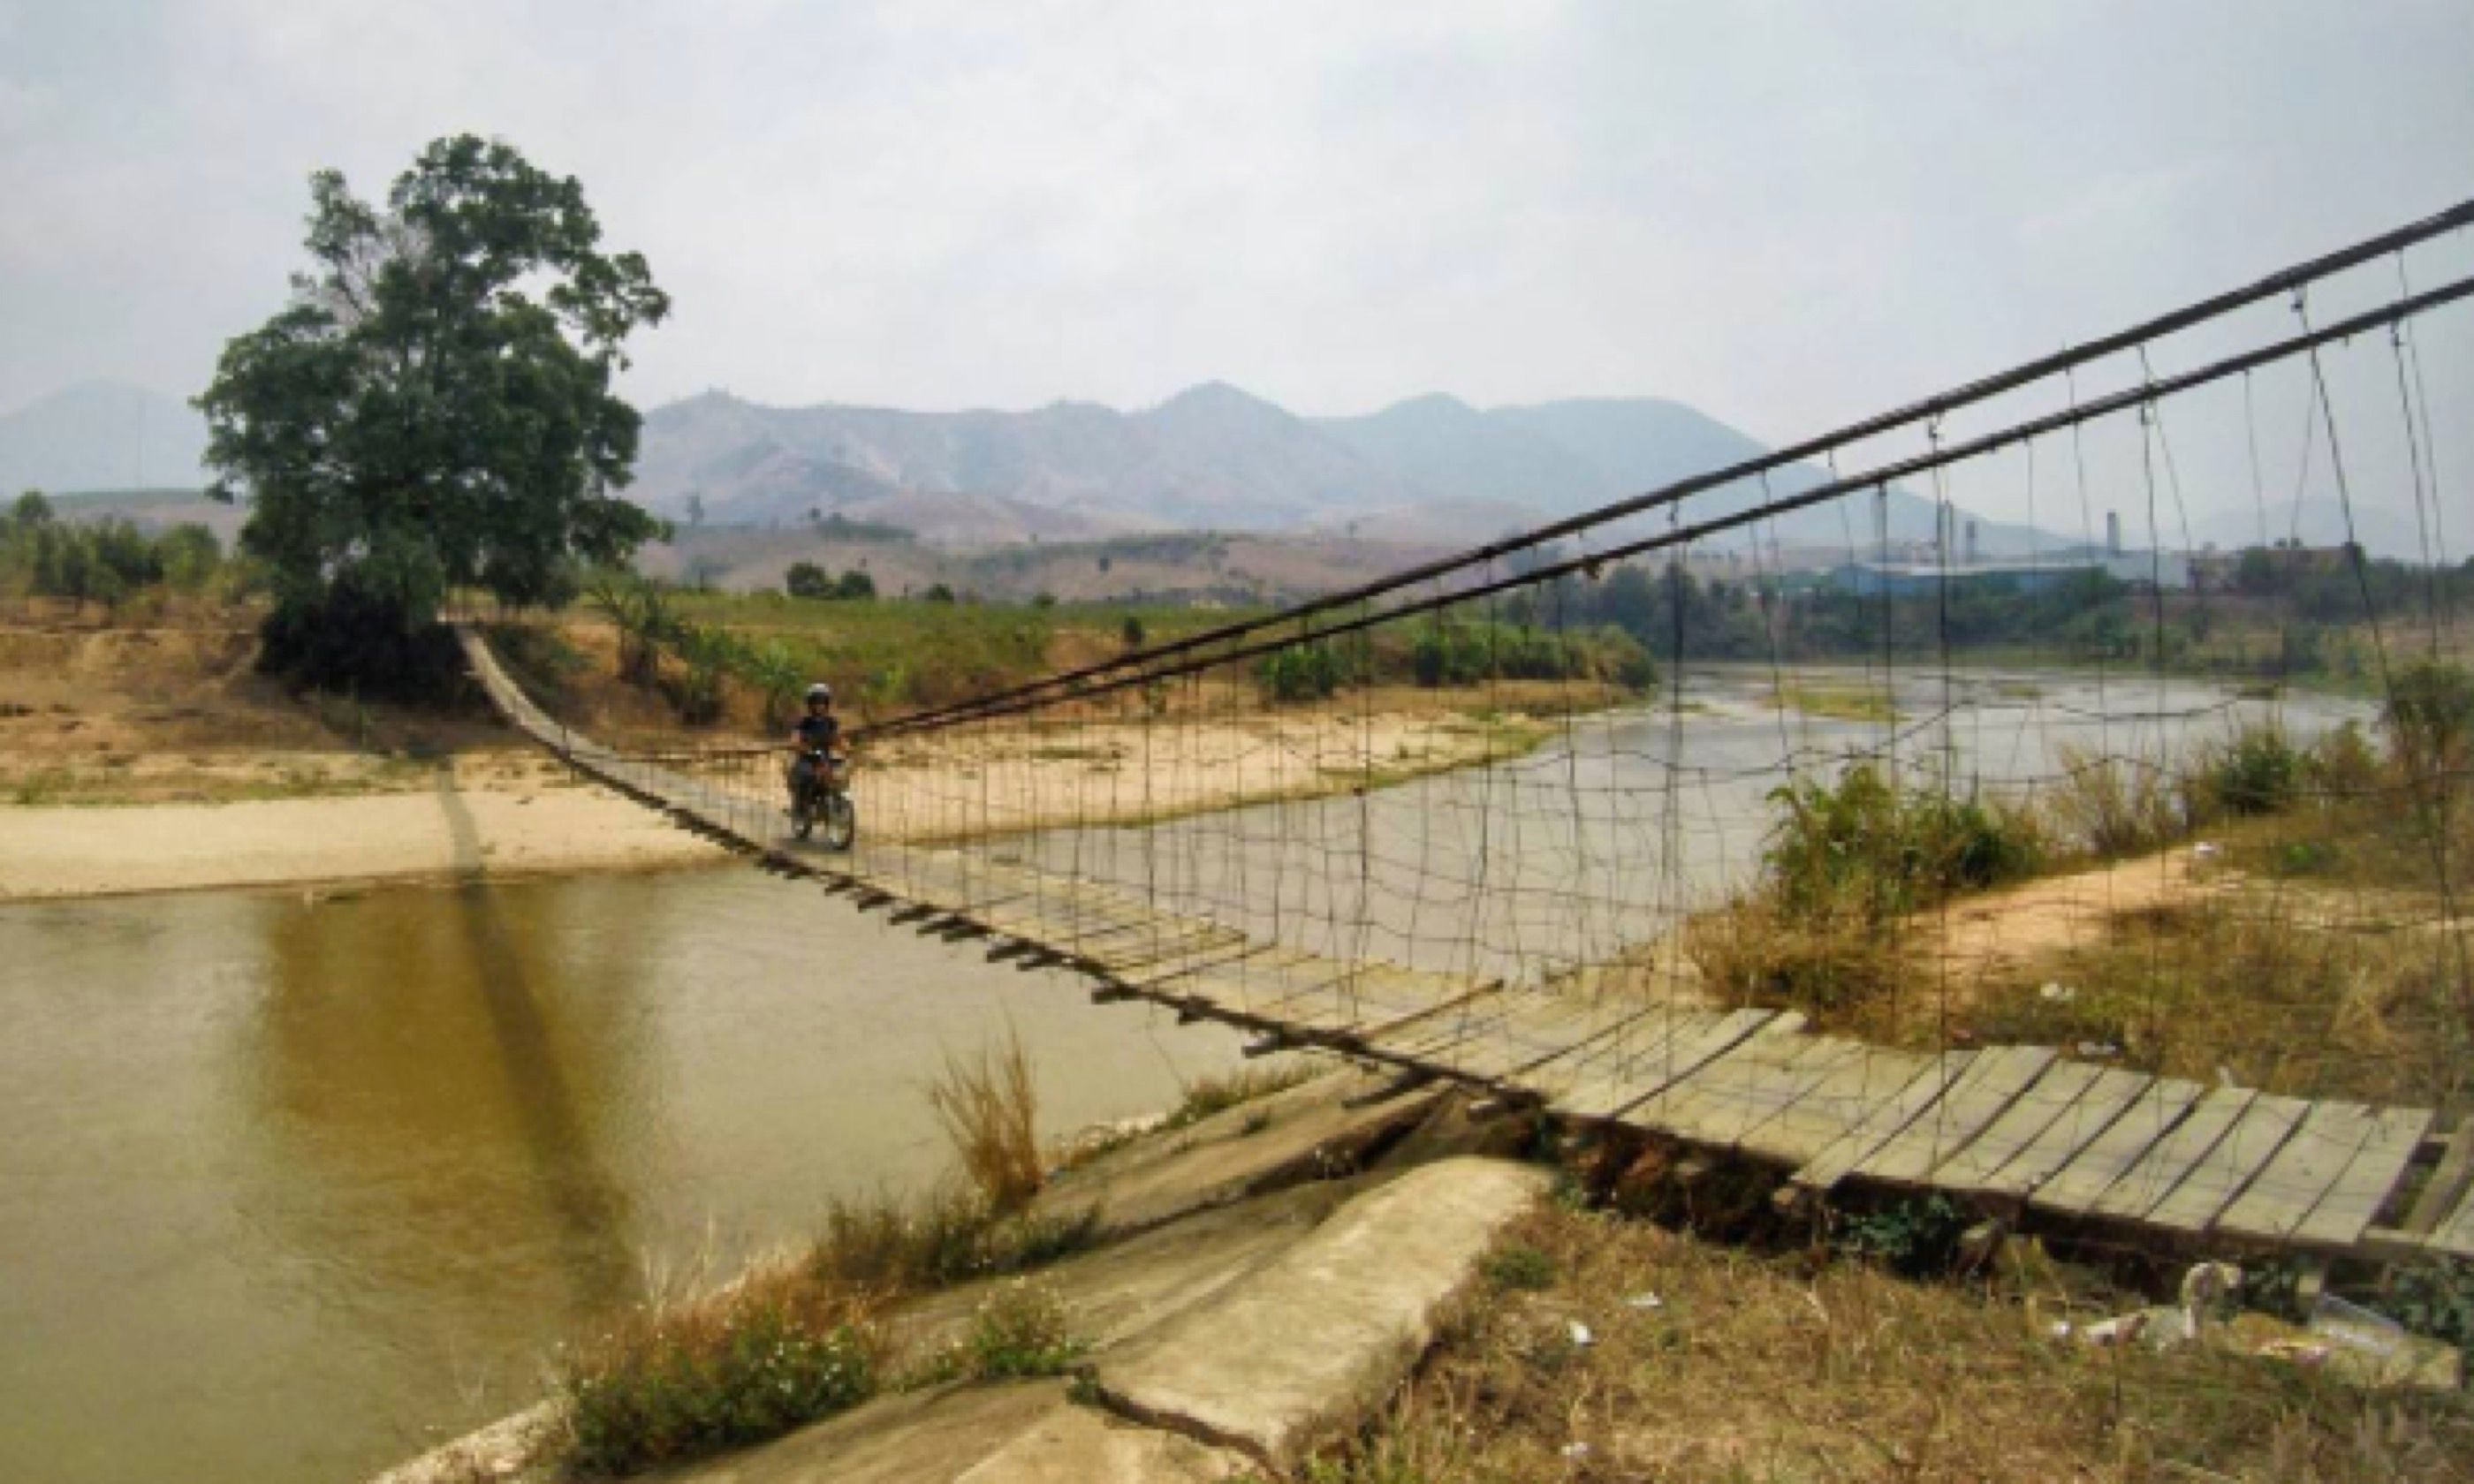 Rope bridge in northern Vietnam You will get muddy! (Jacob Laukaitis)